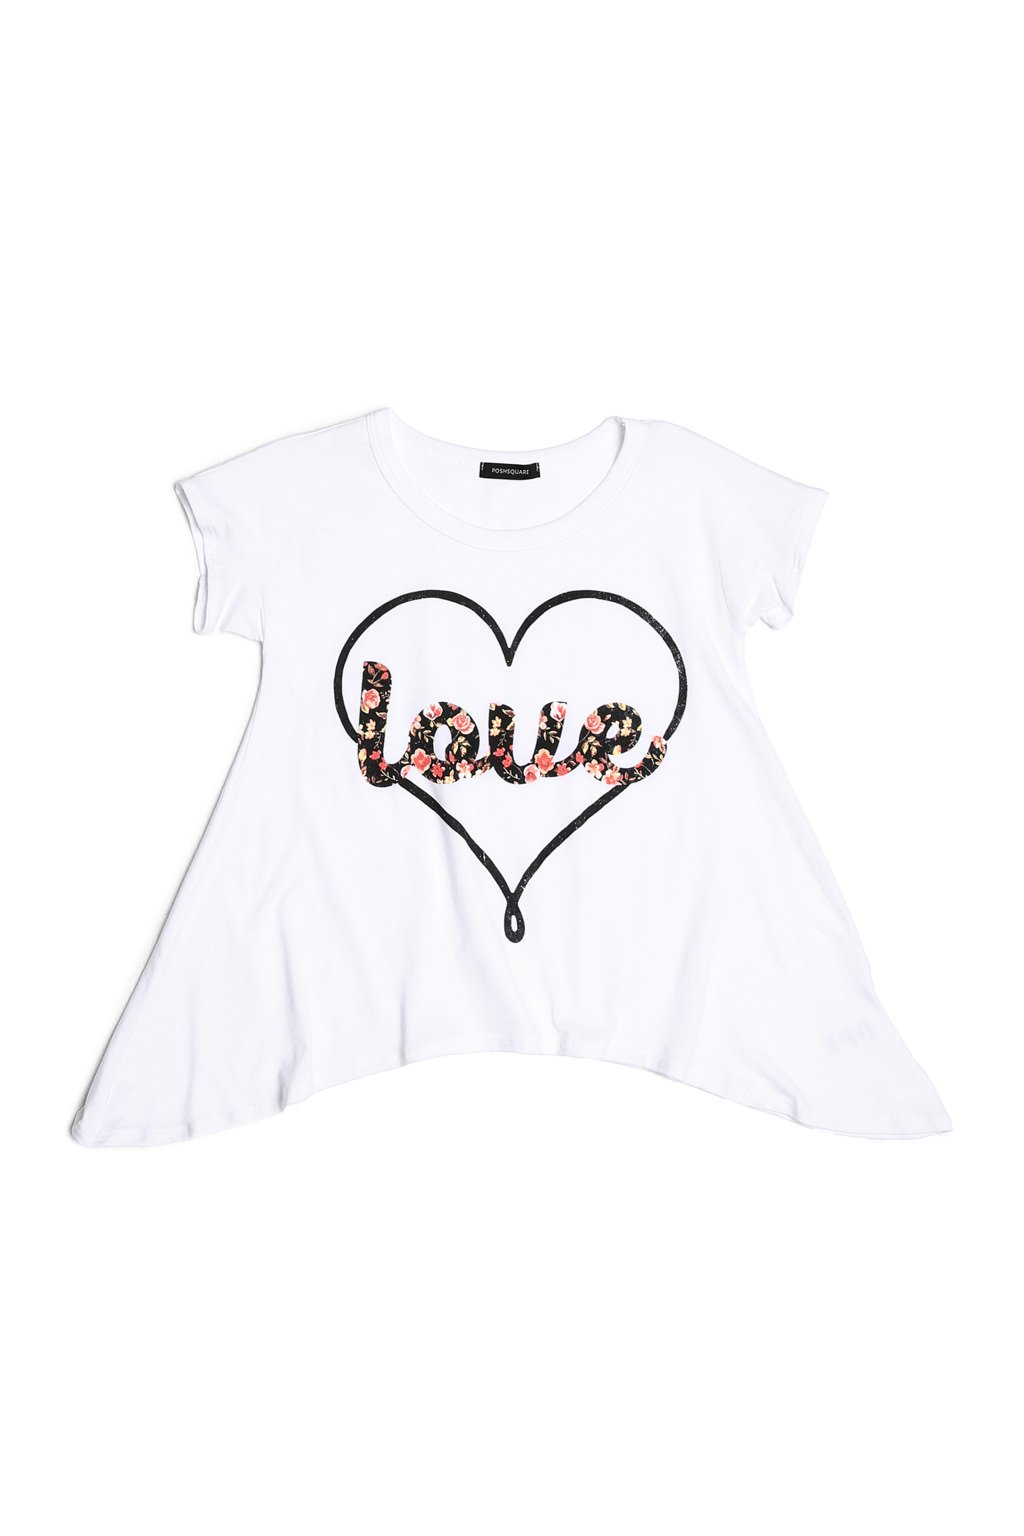 Big Girls Graphic Prints Handkerchief Short Sleeve Cotton Tee T Shirt Top USA White Love L